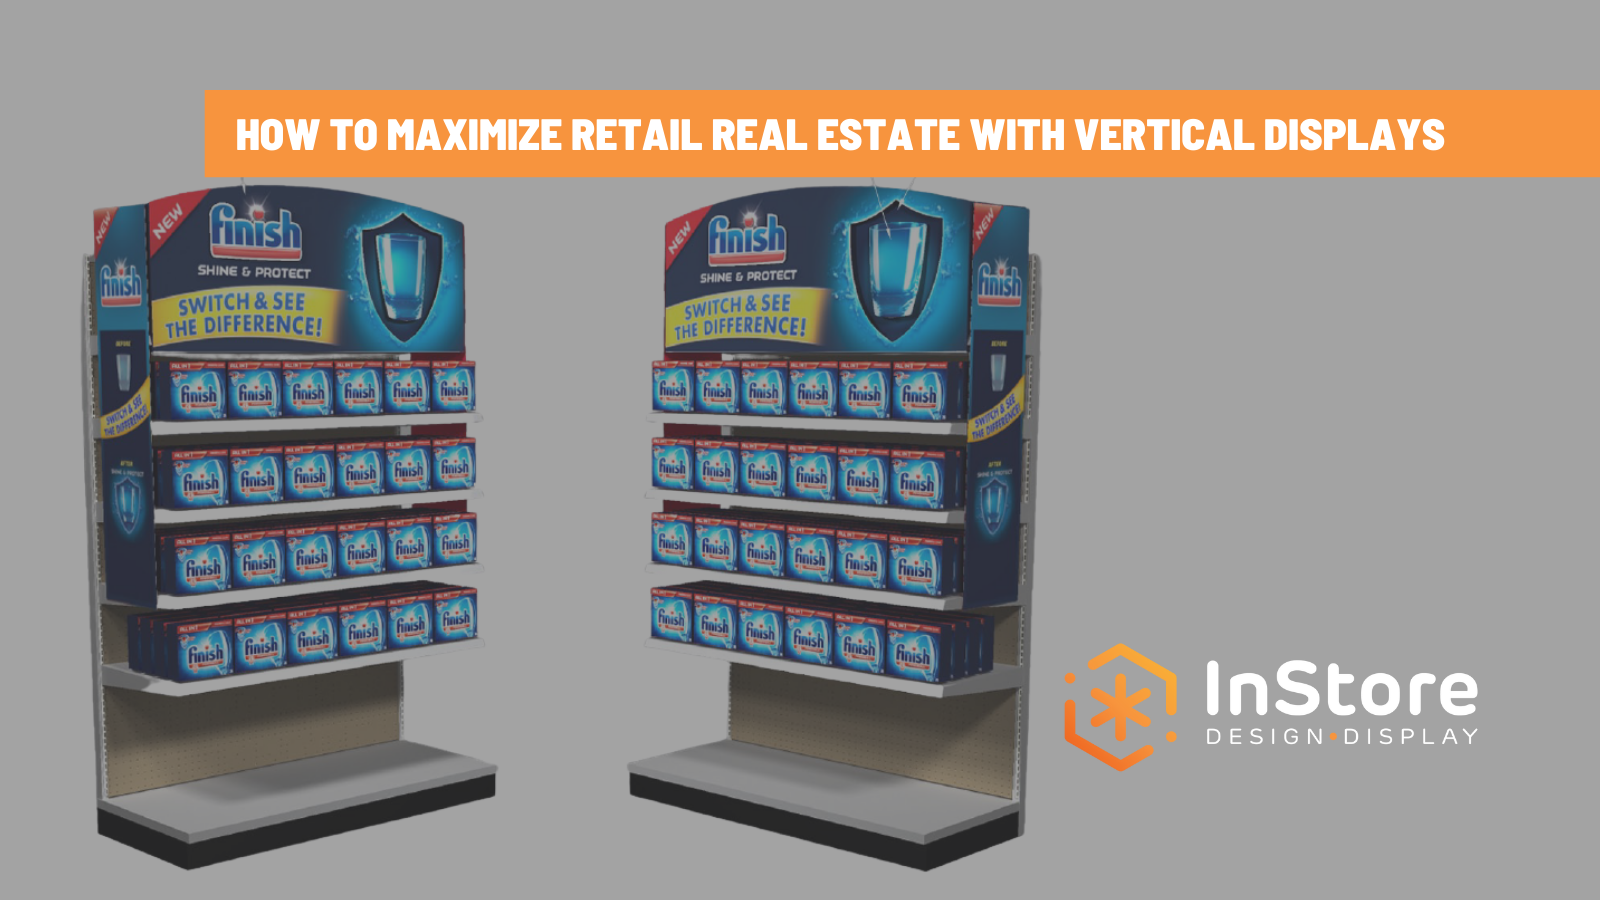 Get a Vertical Advantage: 3 Retail Display Examples that Work